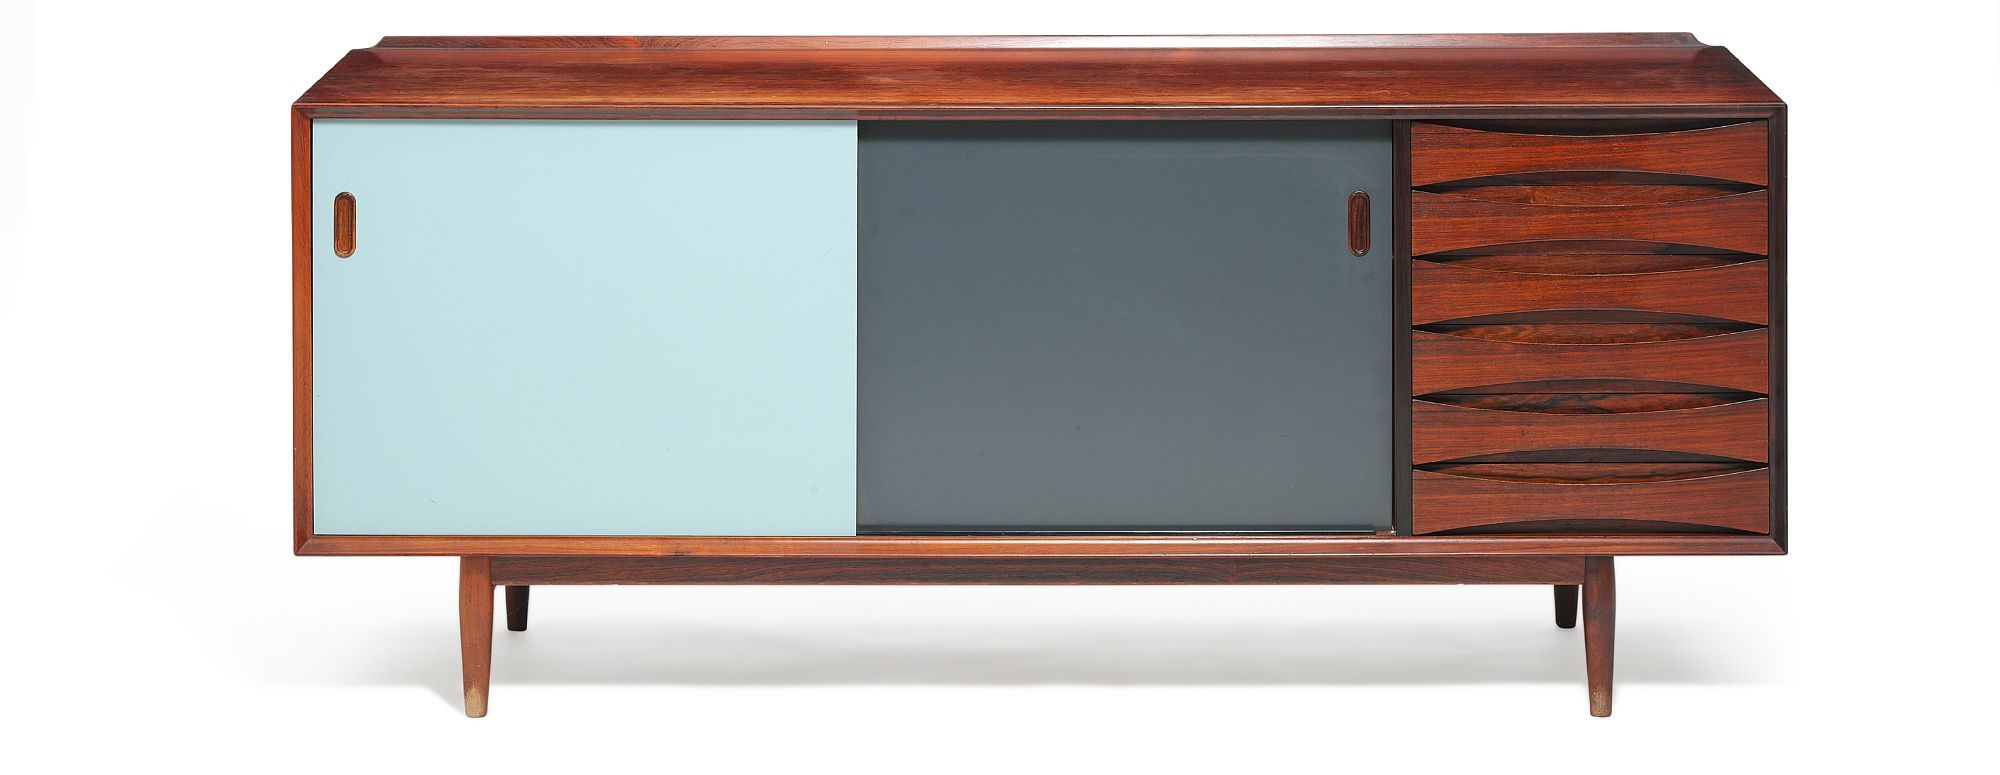 Arne Vodder: Rosewood sideboard, front with two reversible sliding doors and six drawers.